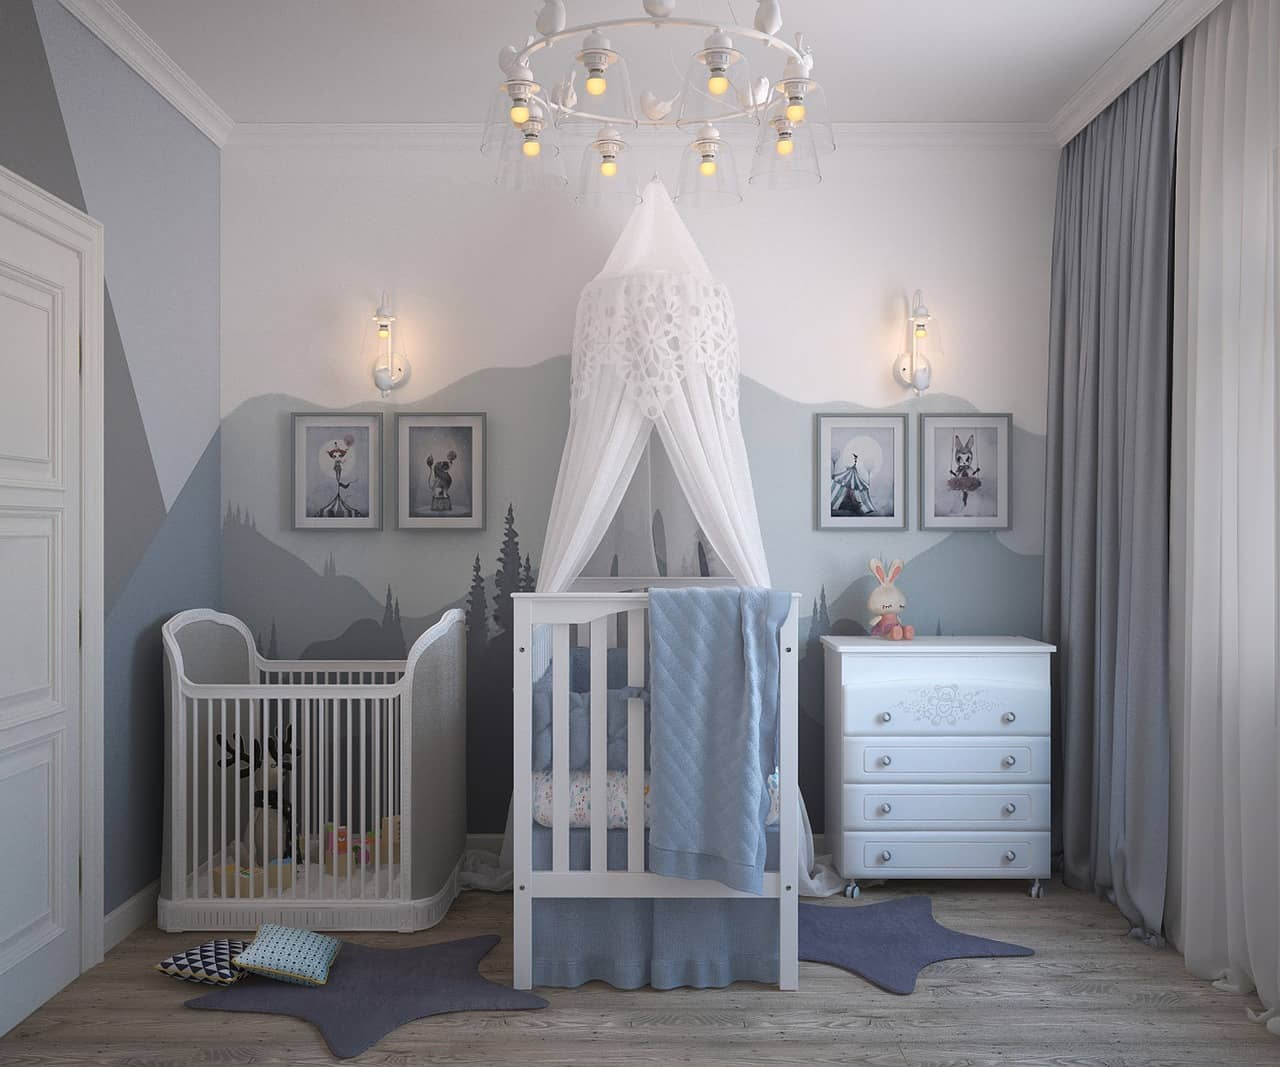 Small Kids Room: Tips for Maximizing Space. Canopy crib and another without it for tiny room